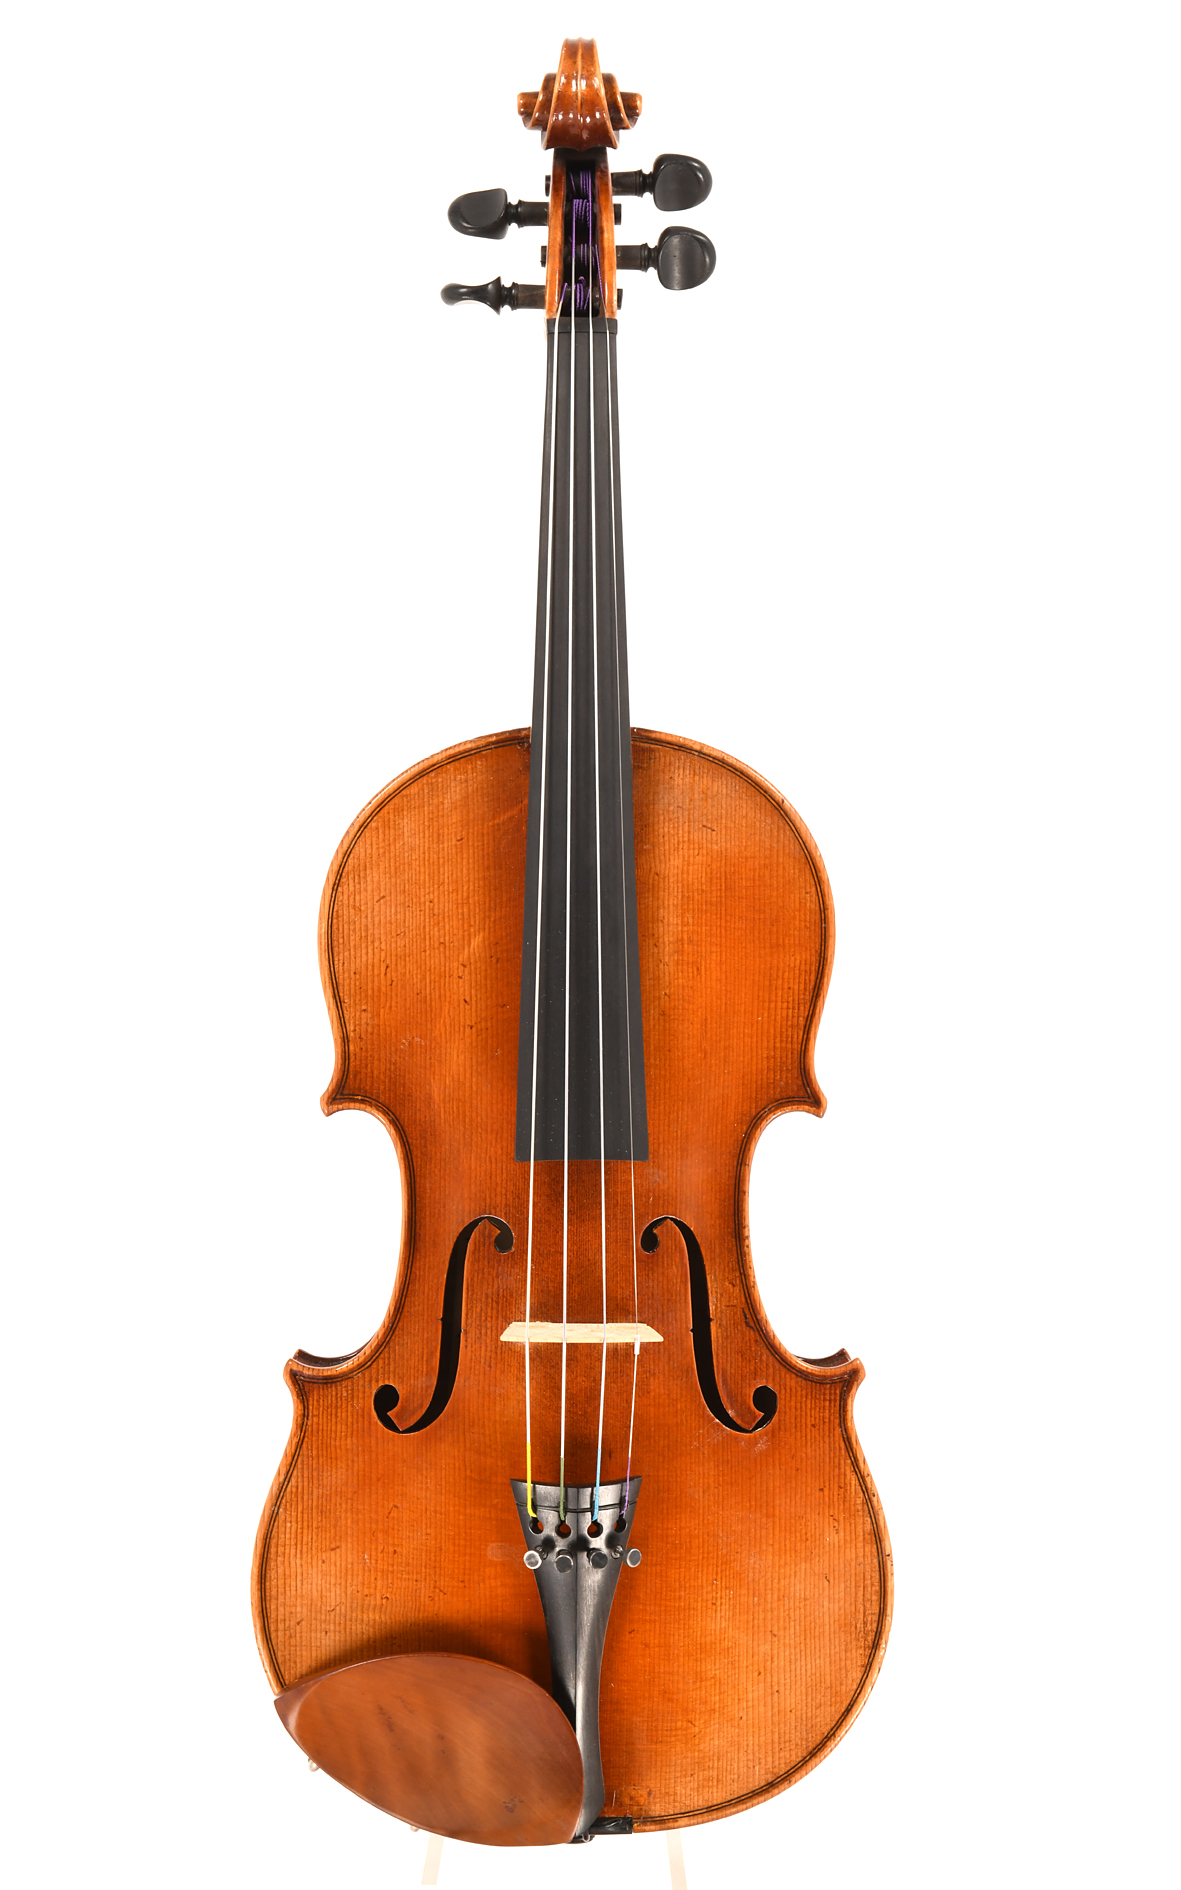 Markneukirchen violin by Paul Rammig, 1938